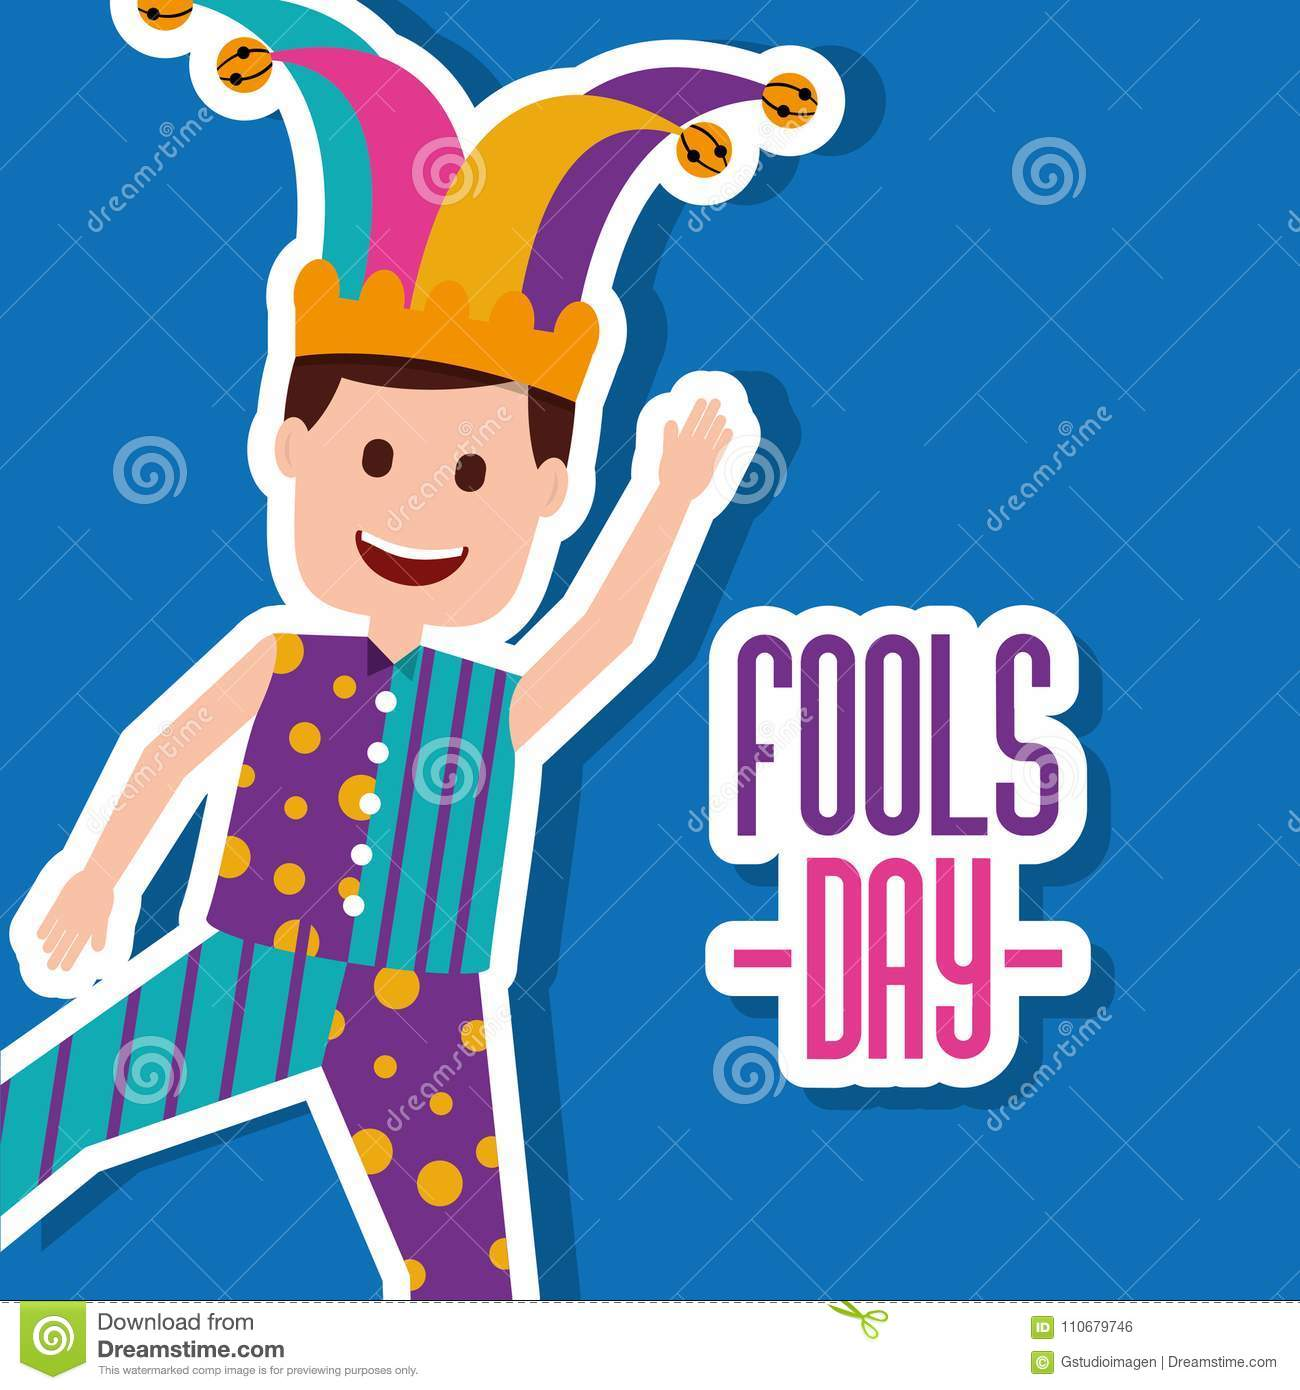 Fools Day Greeting Card Stock Vector Illustration Of Bright 110679746